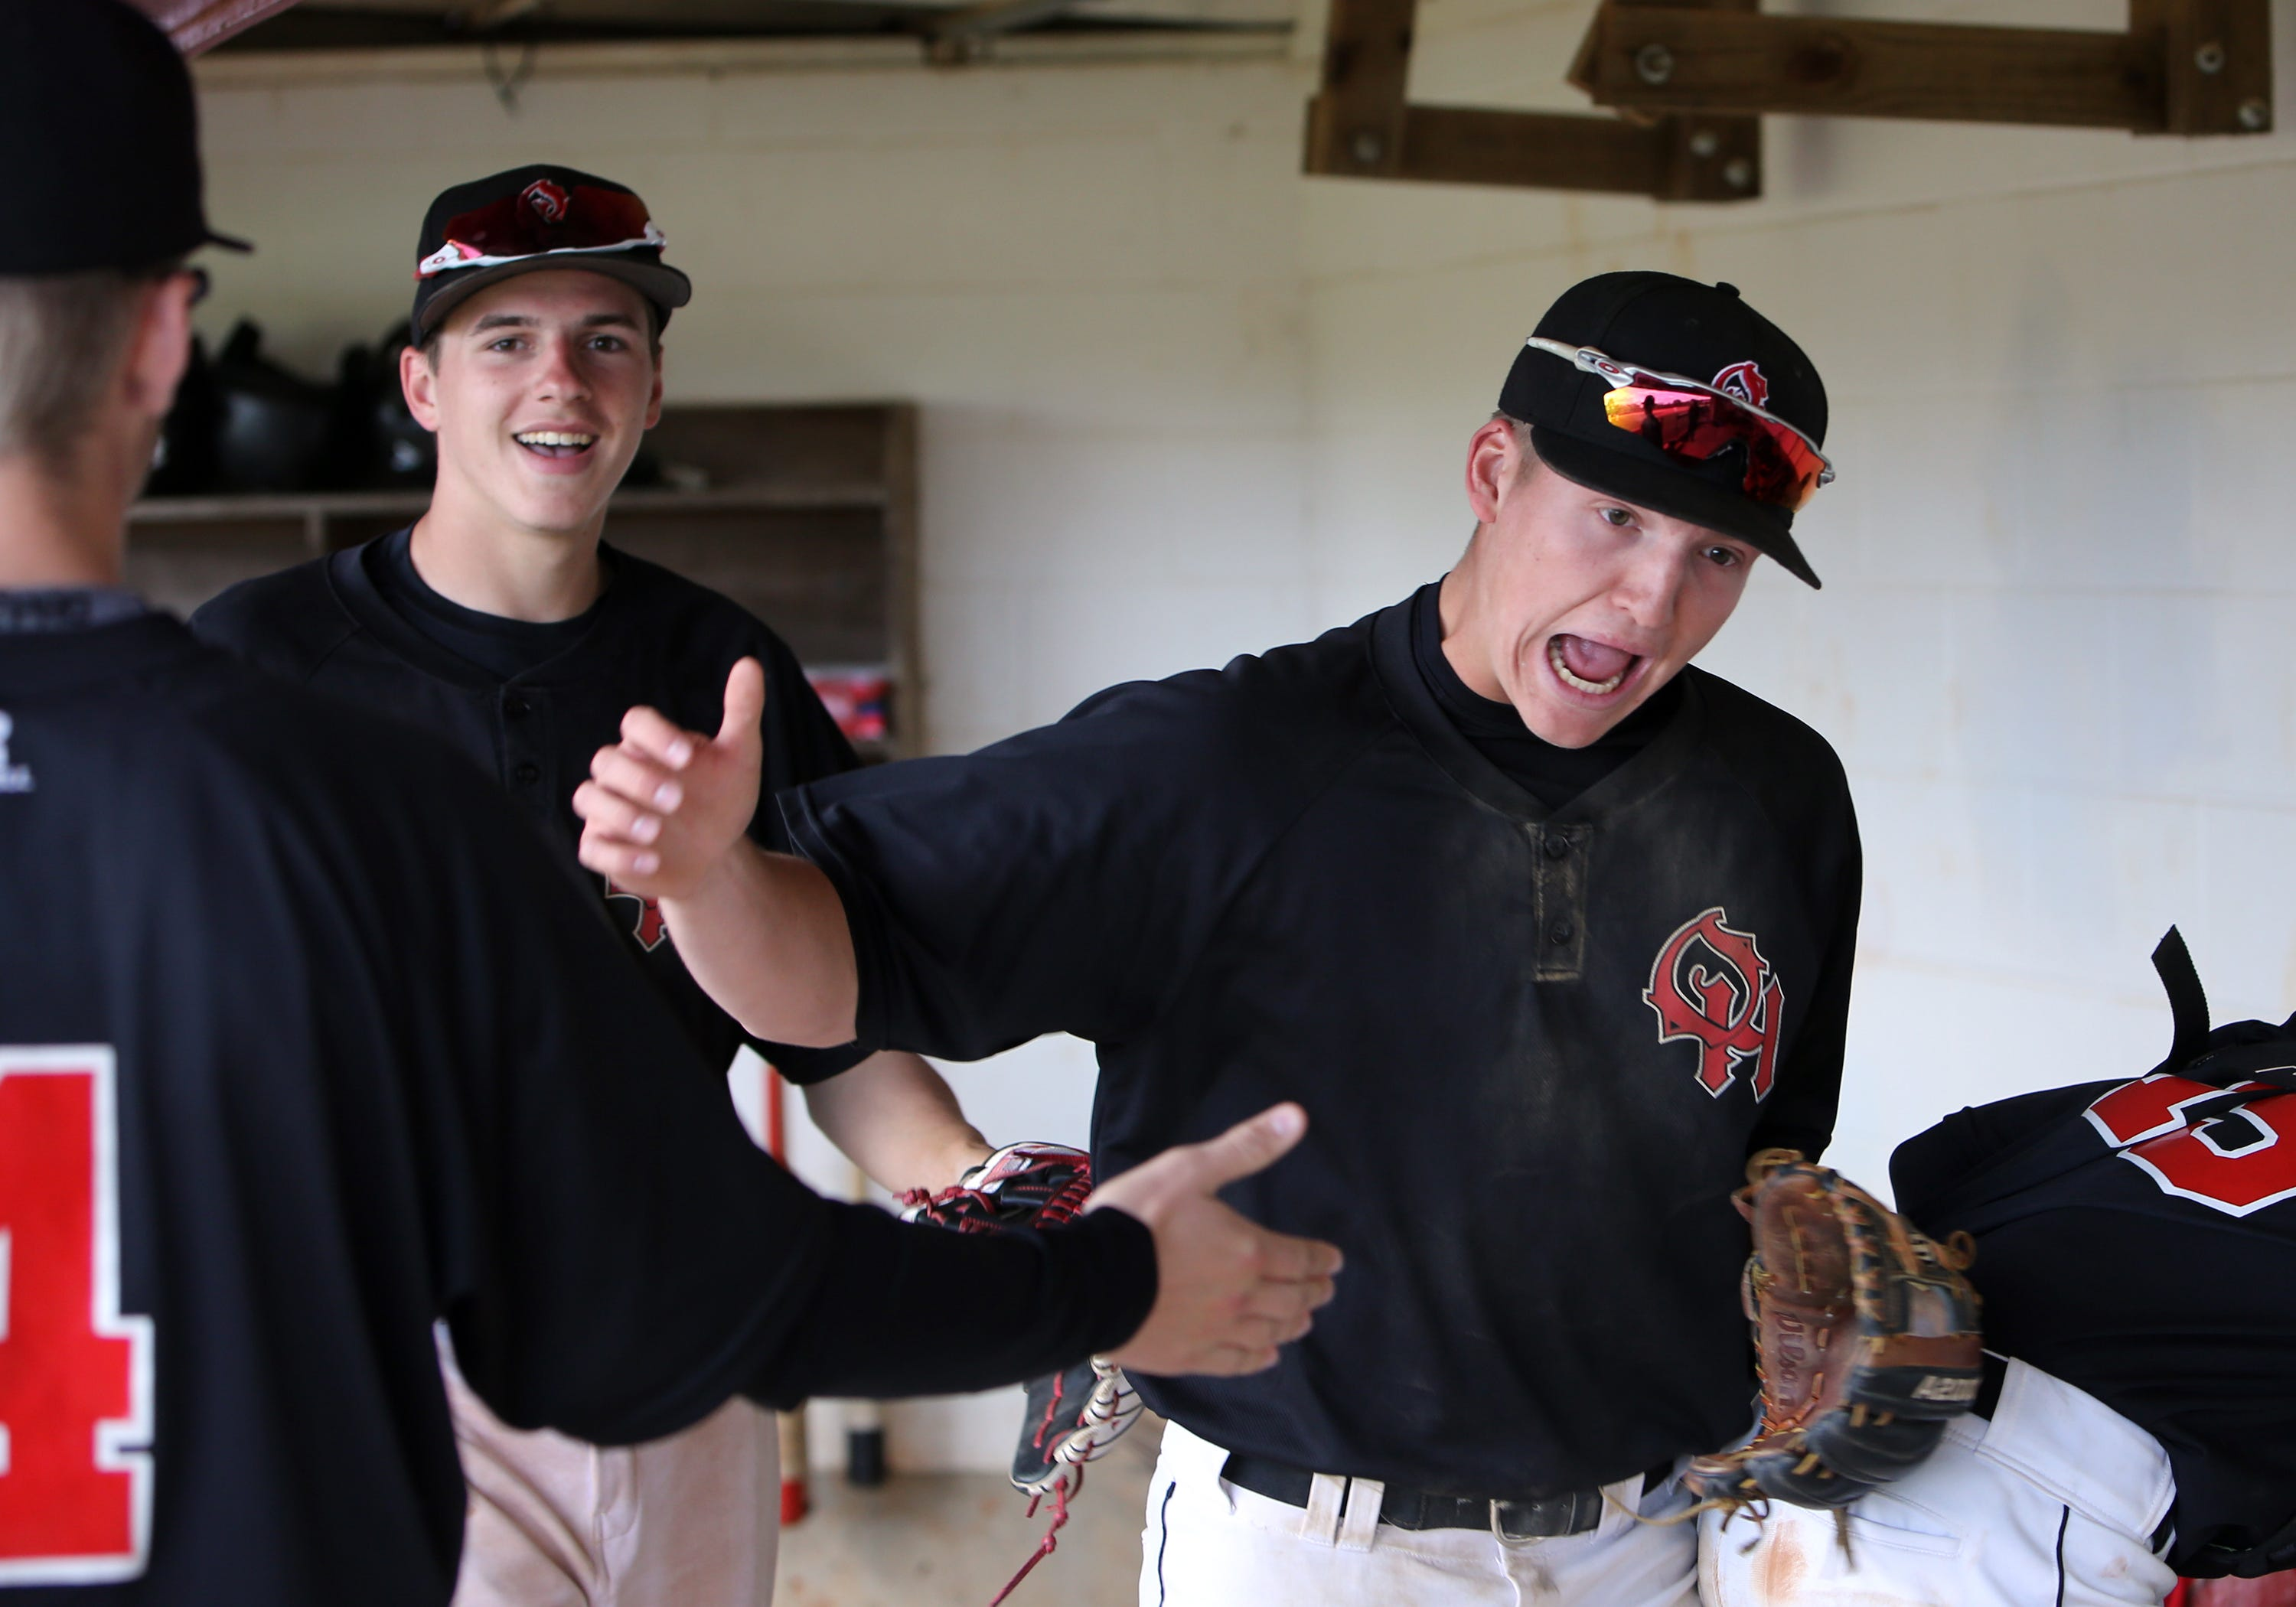 Oak Hills baseball beats Sycamore in postseason battle of Greater Miami Conference rivals